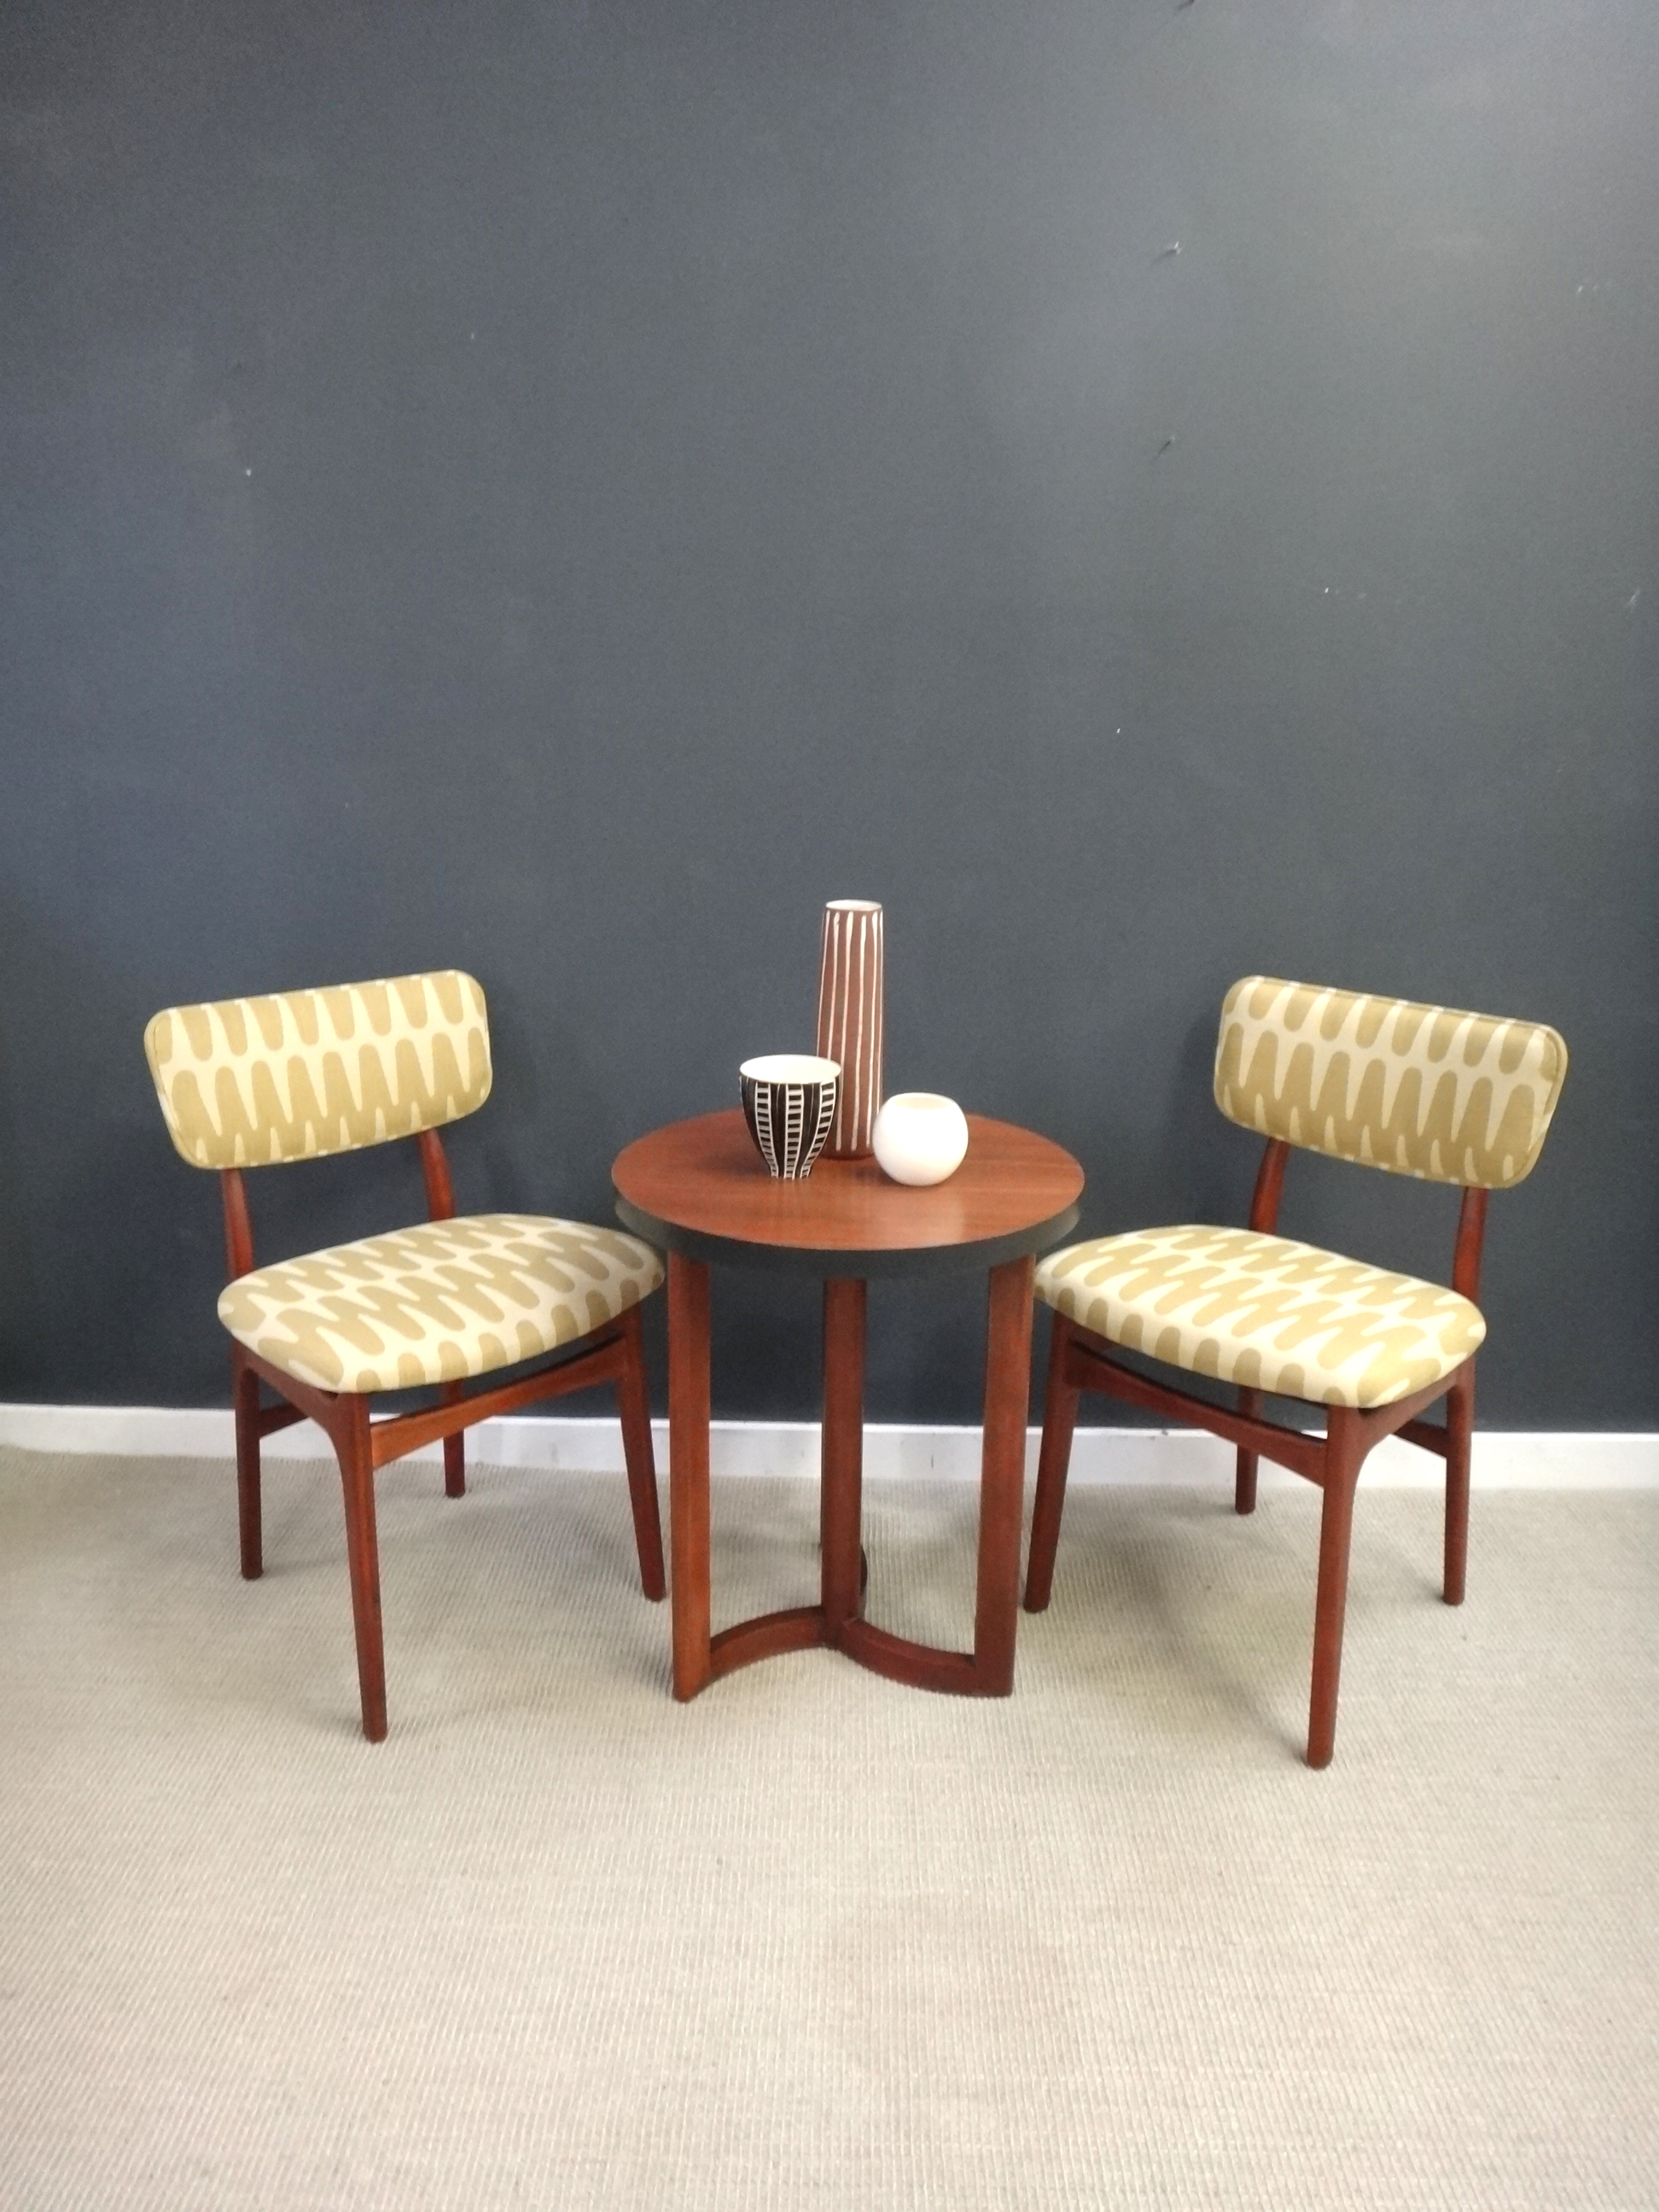 Accent Chairs Sold In Pairs.Pair Of Reupholstered Mid Century Teak Accent Chairs Retrocraft